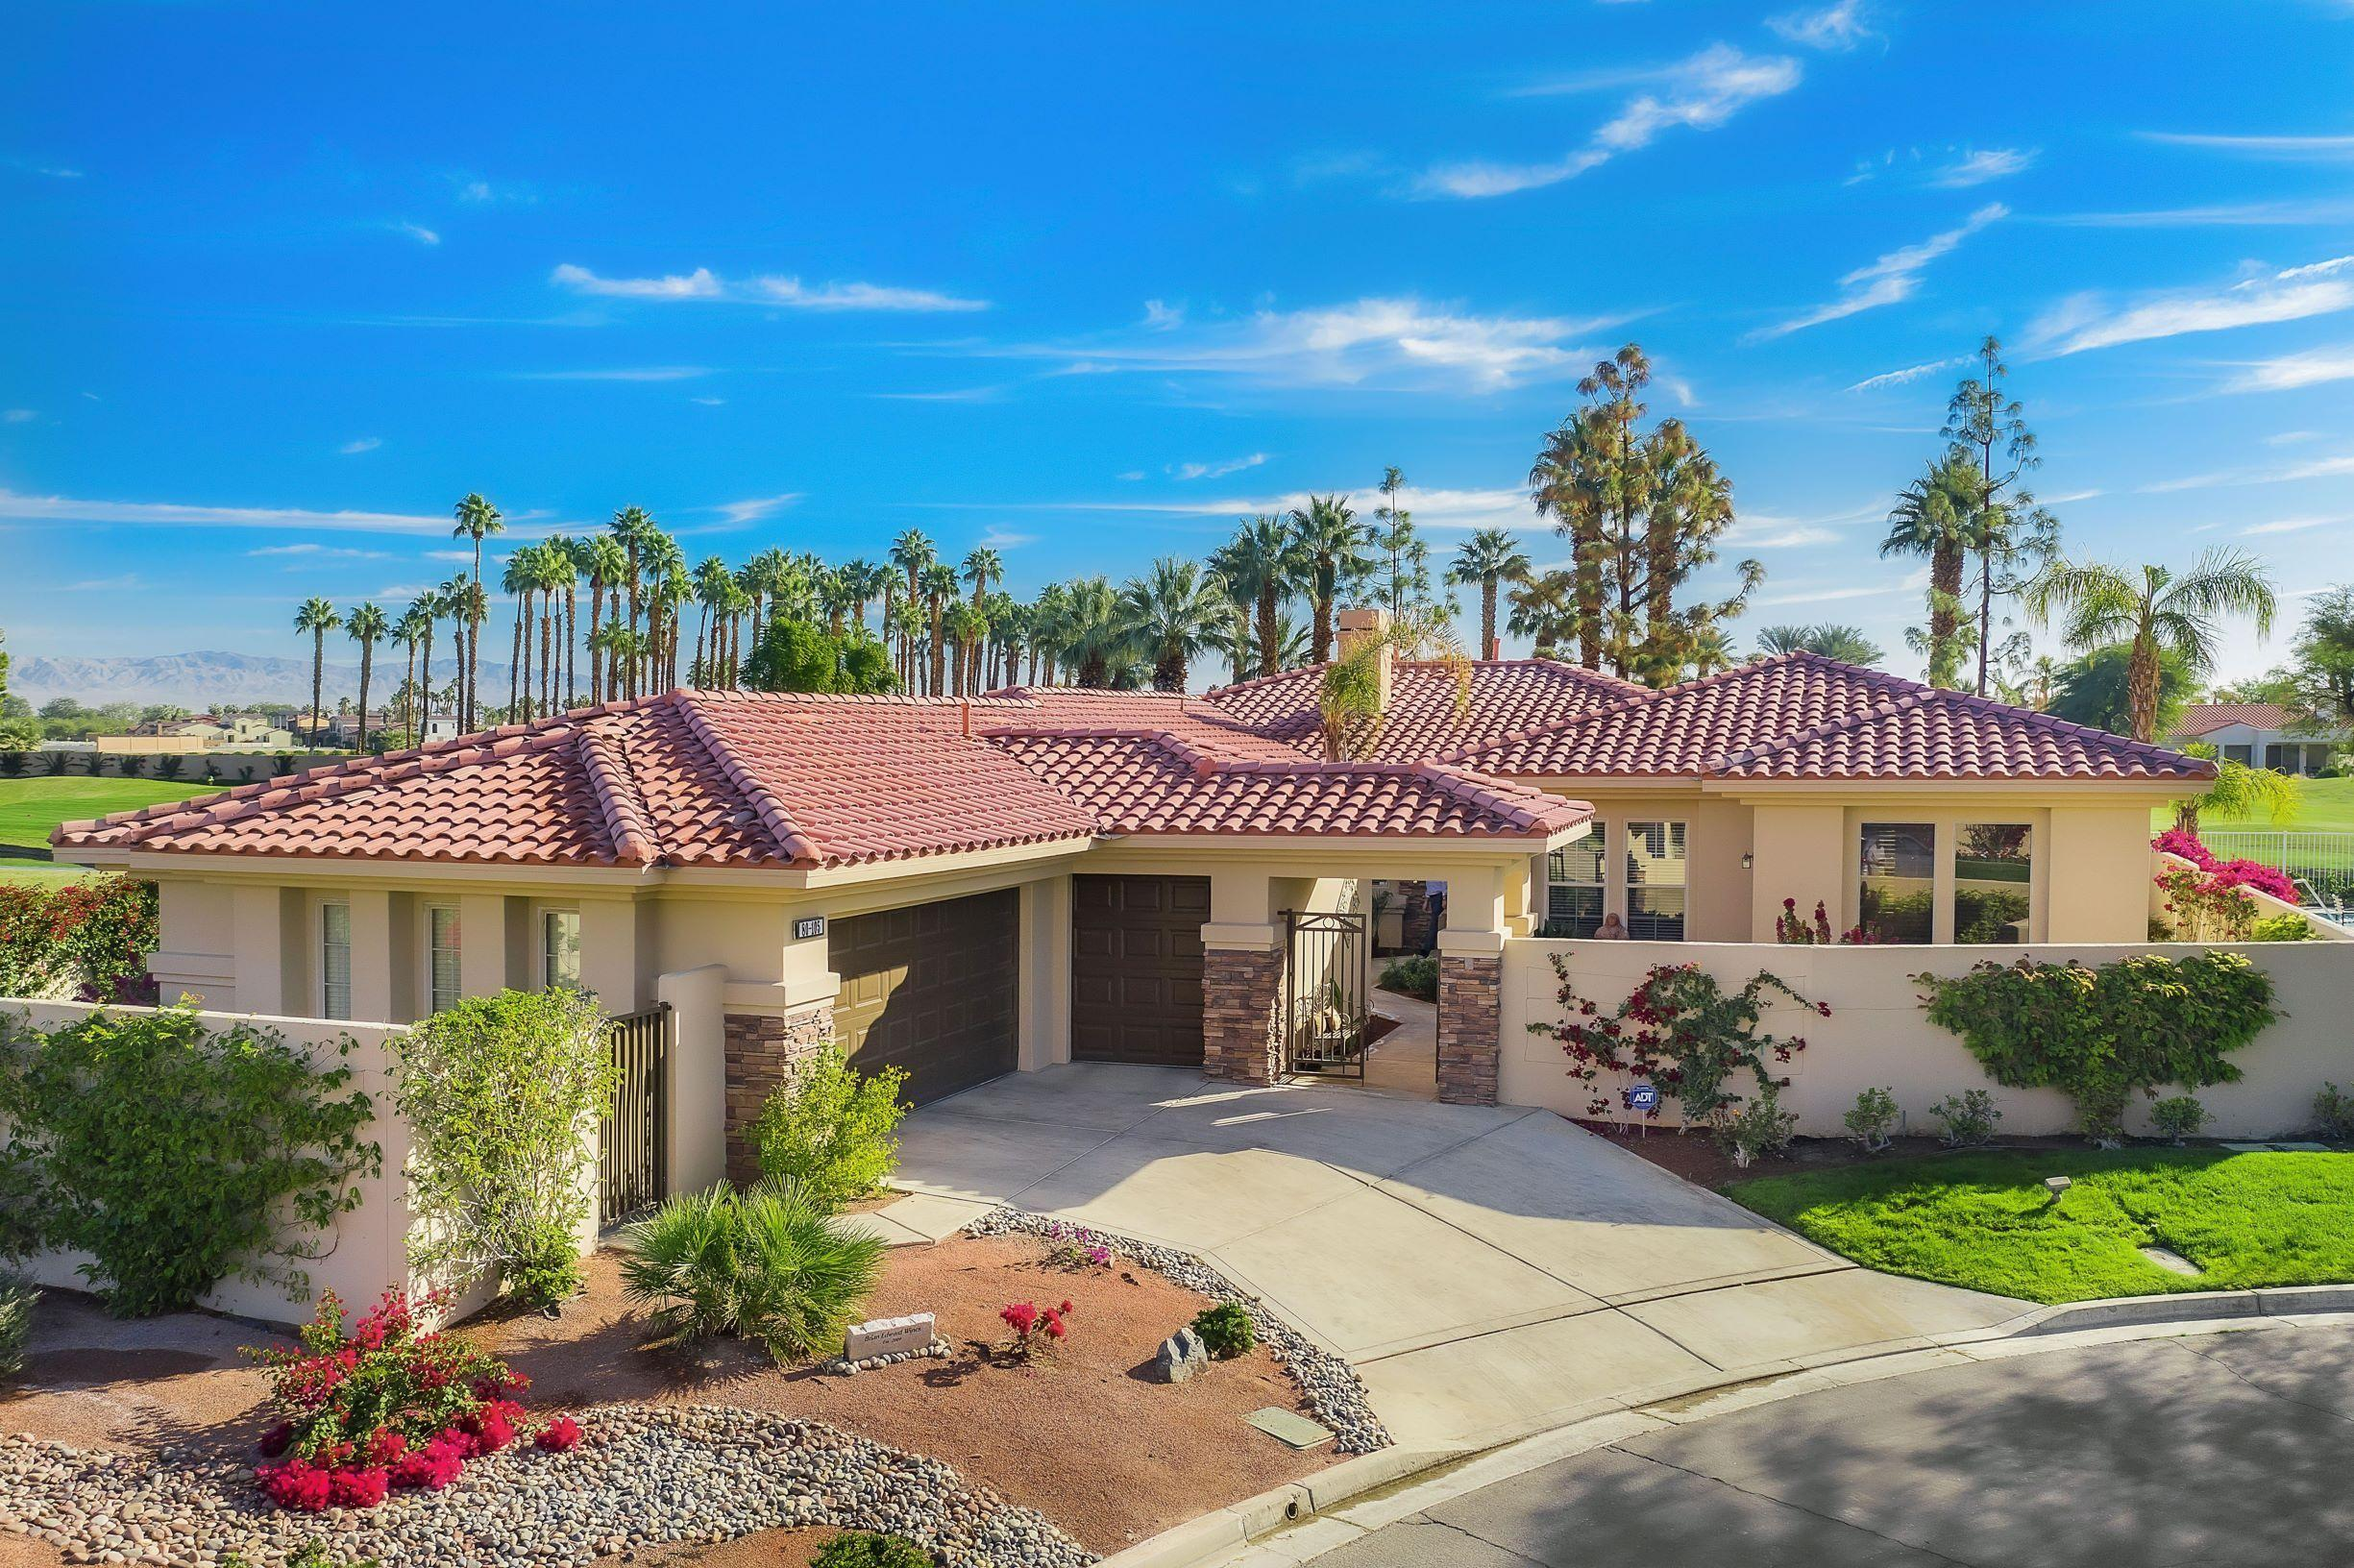 Photo of 80105 Cedar Crest, La Quinta, CA 92253